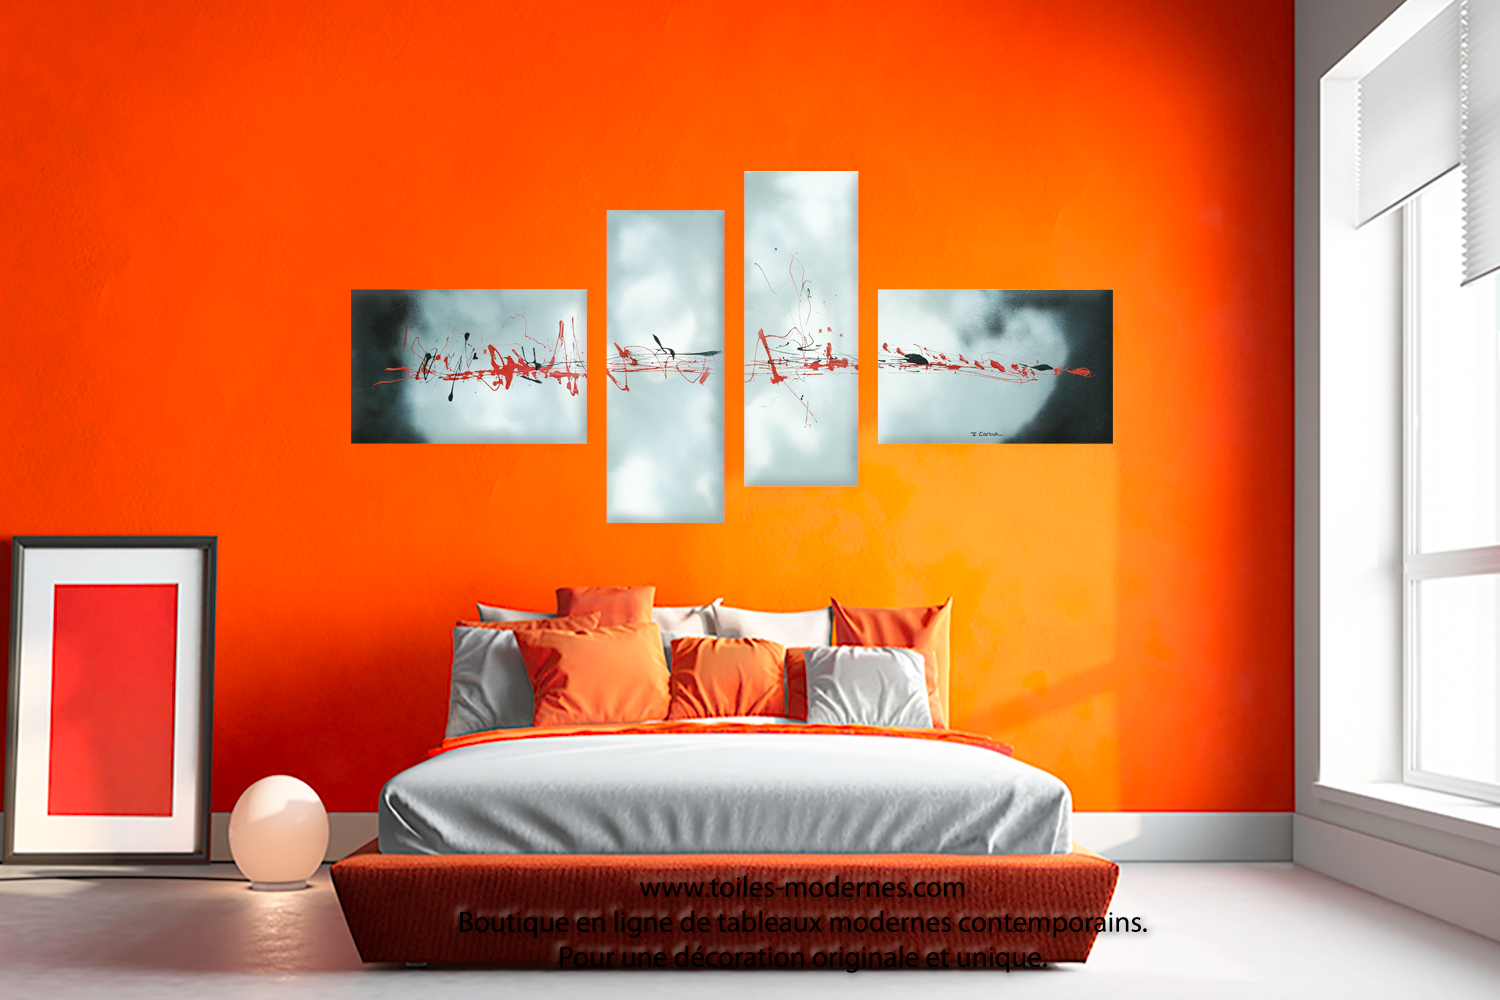 couleur peinture orangee avec des id es int ressantes pour la conception de la. Black Bedroom Furniture Sets. Home Design Ideas